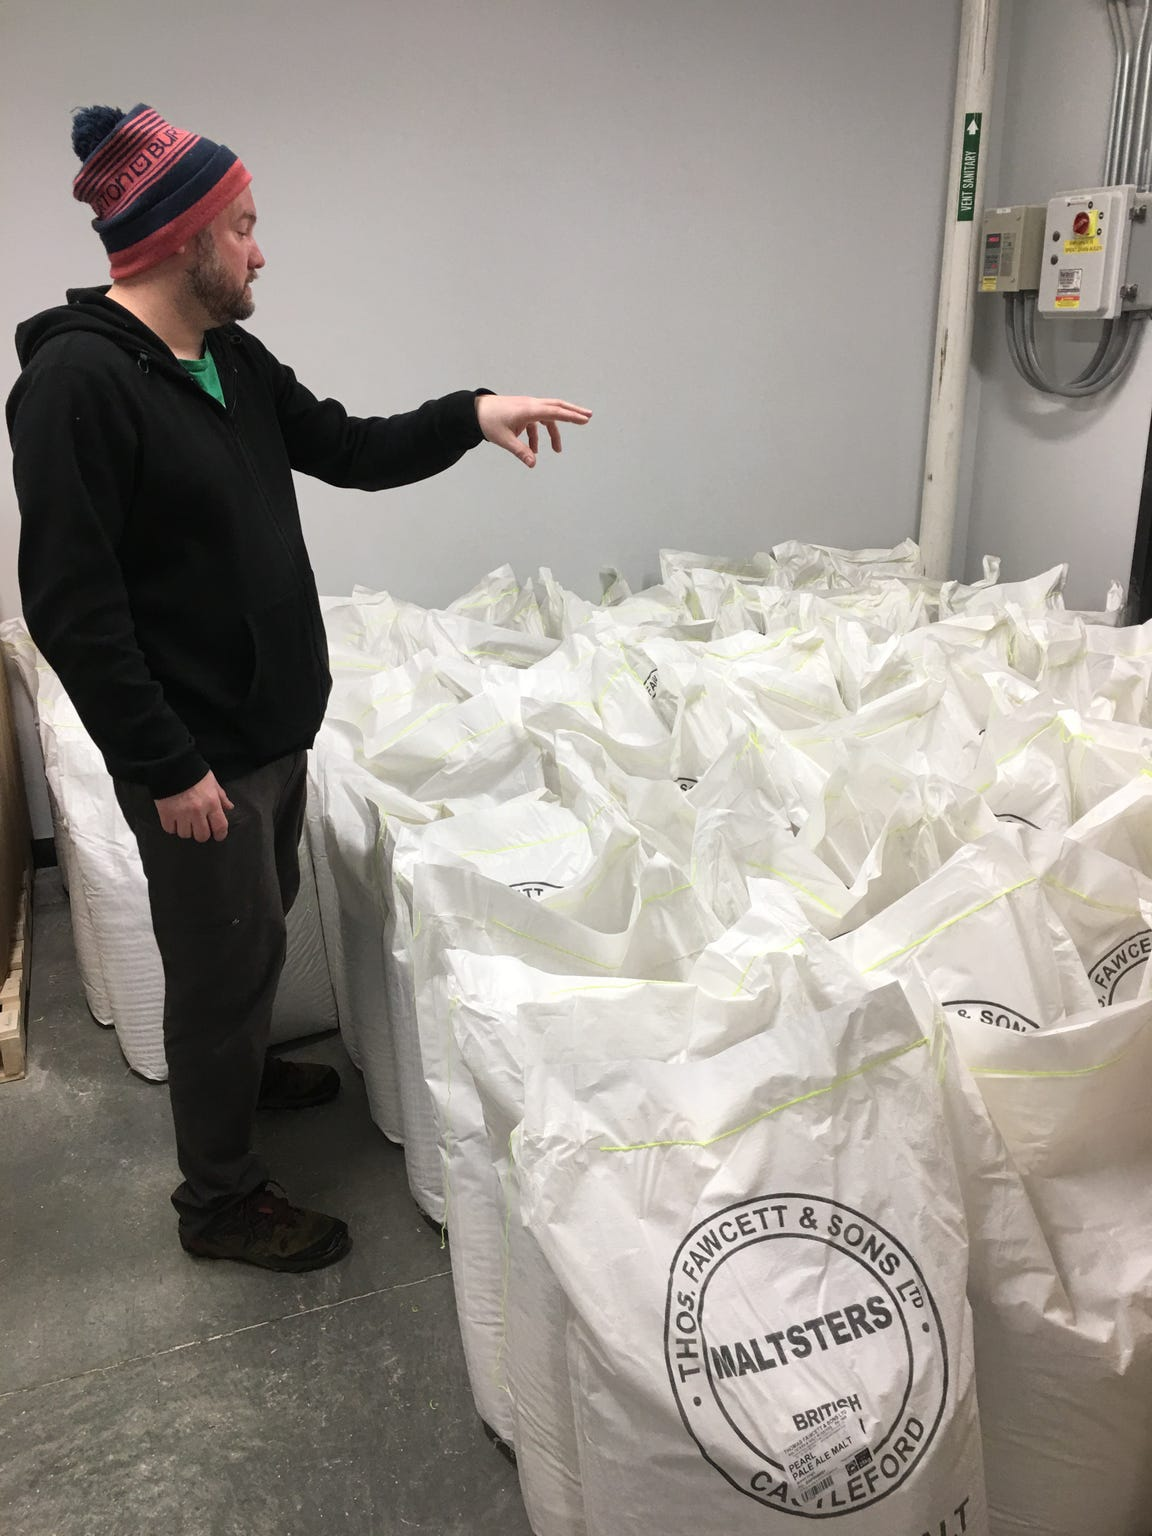 Jim Conroy counts bags of malt for his upcoming brew at The Alchemist in Stowe on Thursday, Jan. 17, 2019.